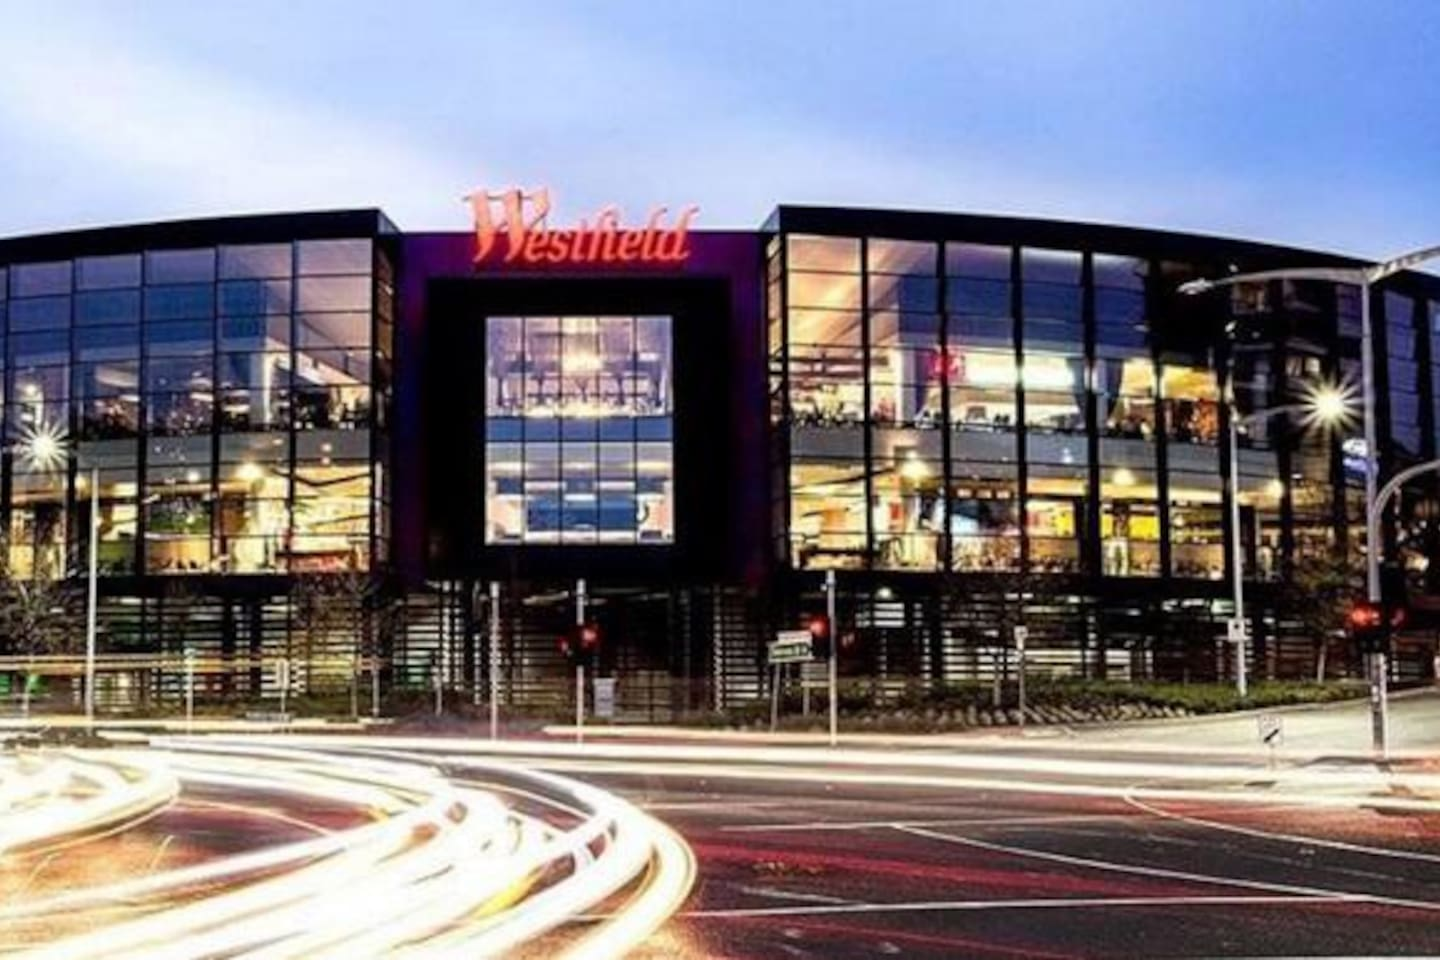 Doncaster Westfield Shopping Centre is directly across the road!